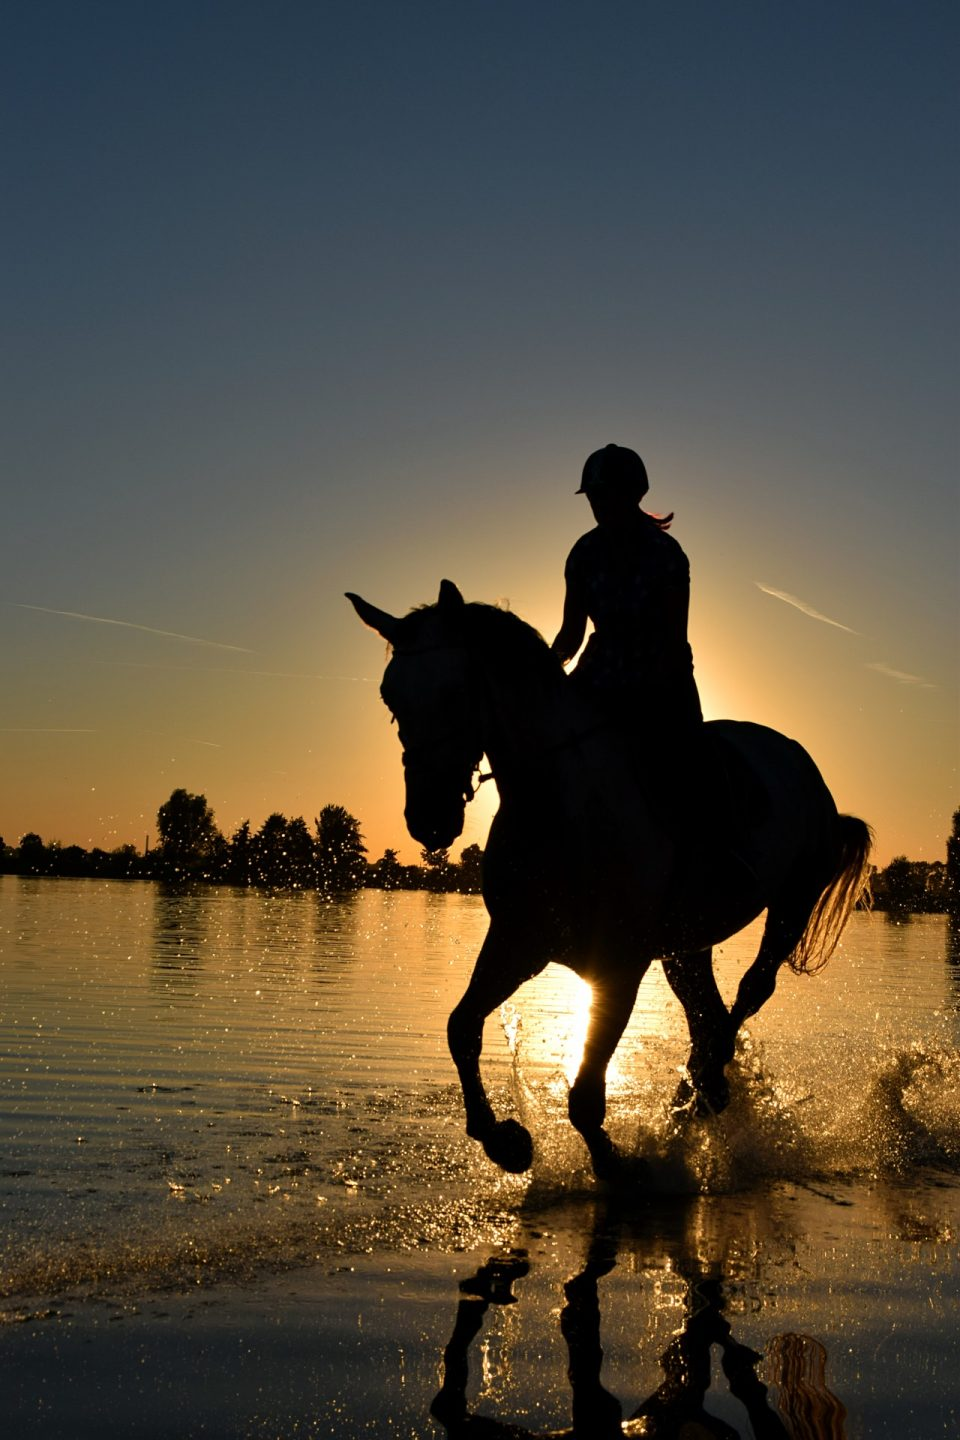 silhouette-of-person-riding-horse-on-body-of-water-under-210237